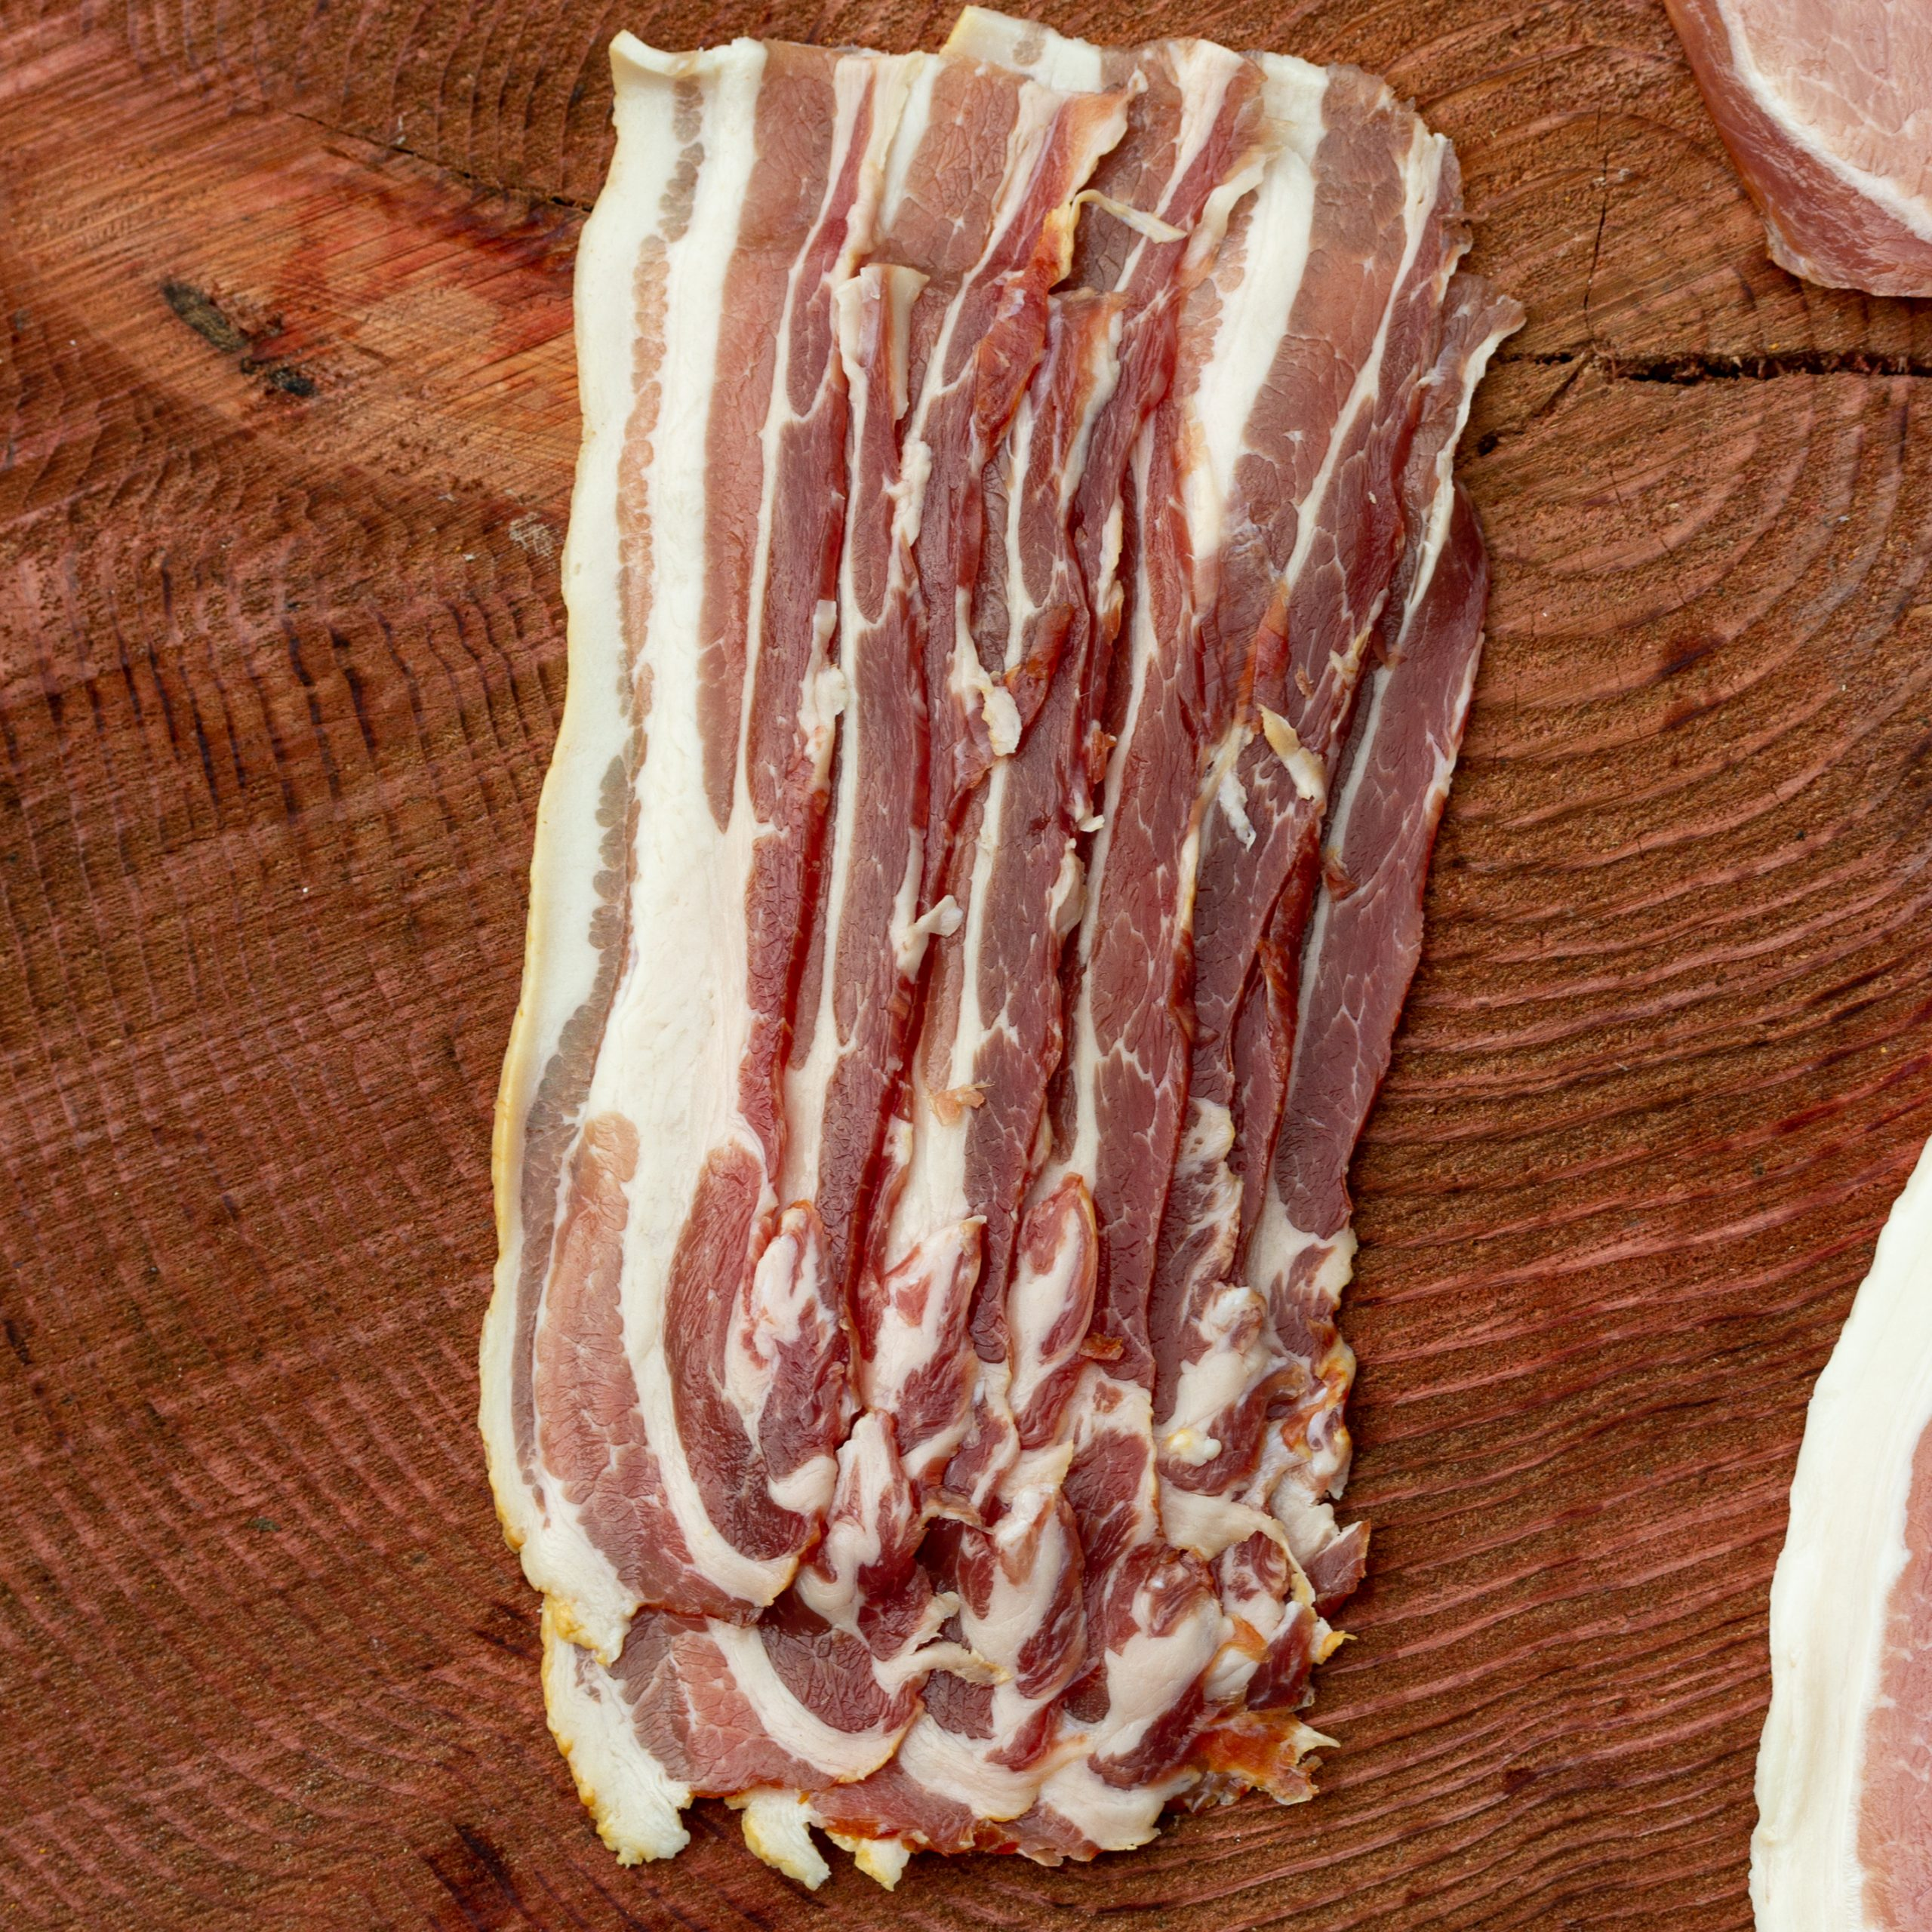 Cumbrian Traditionally dry-cured smoked streaky bacon